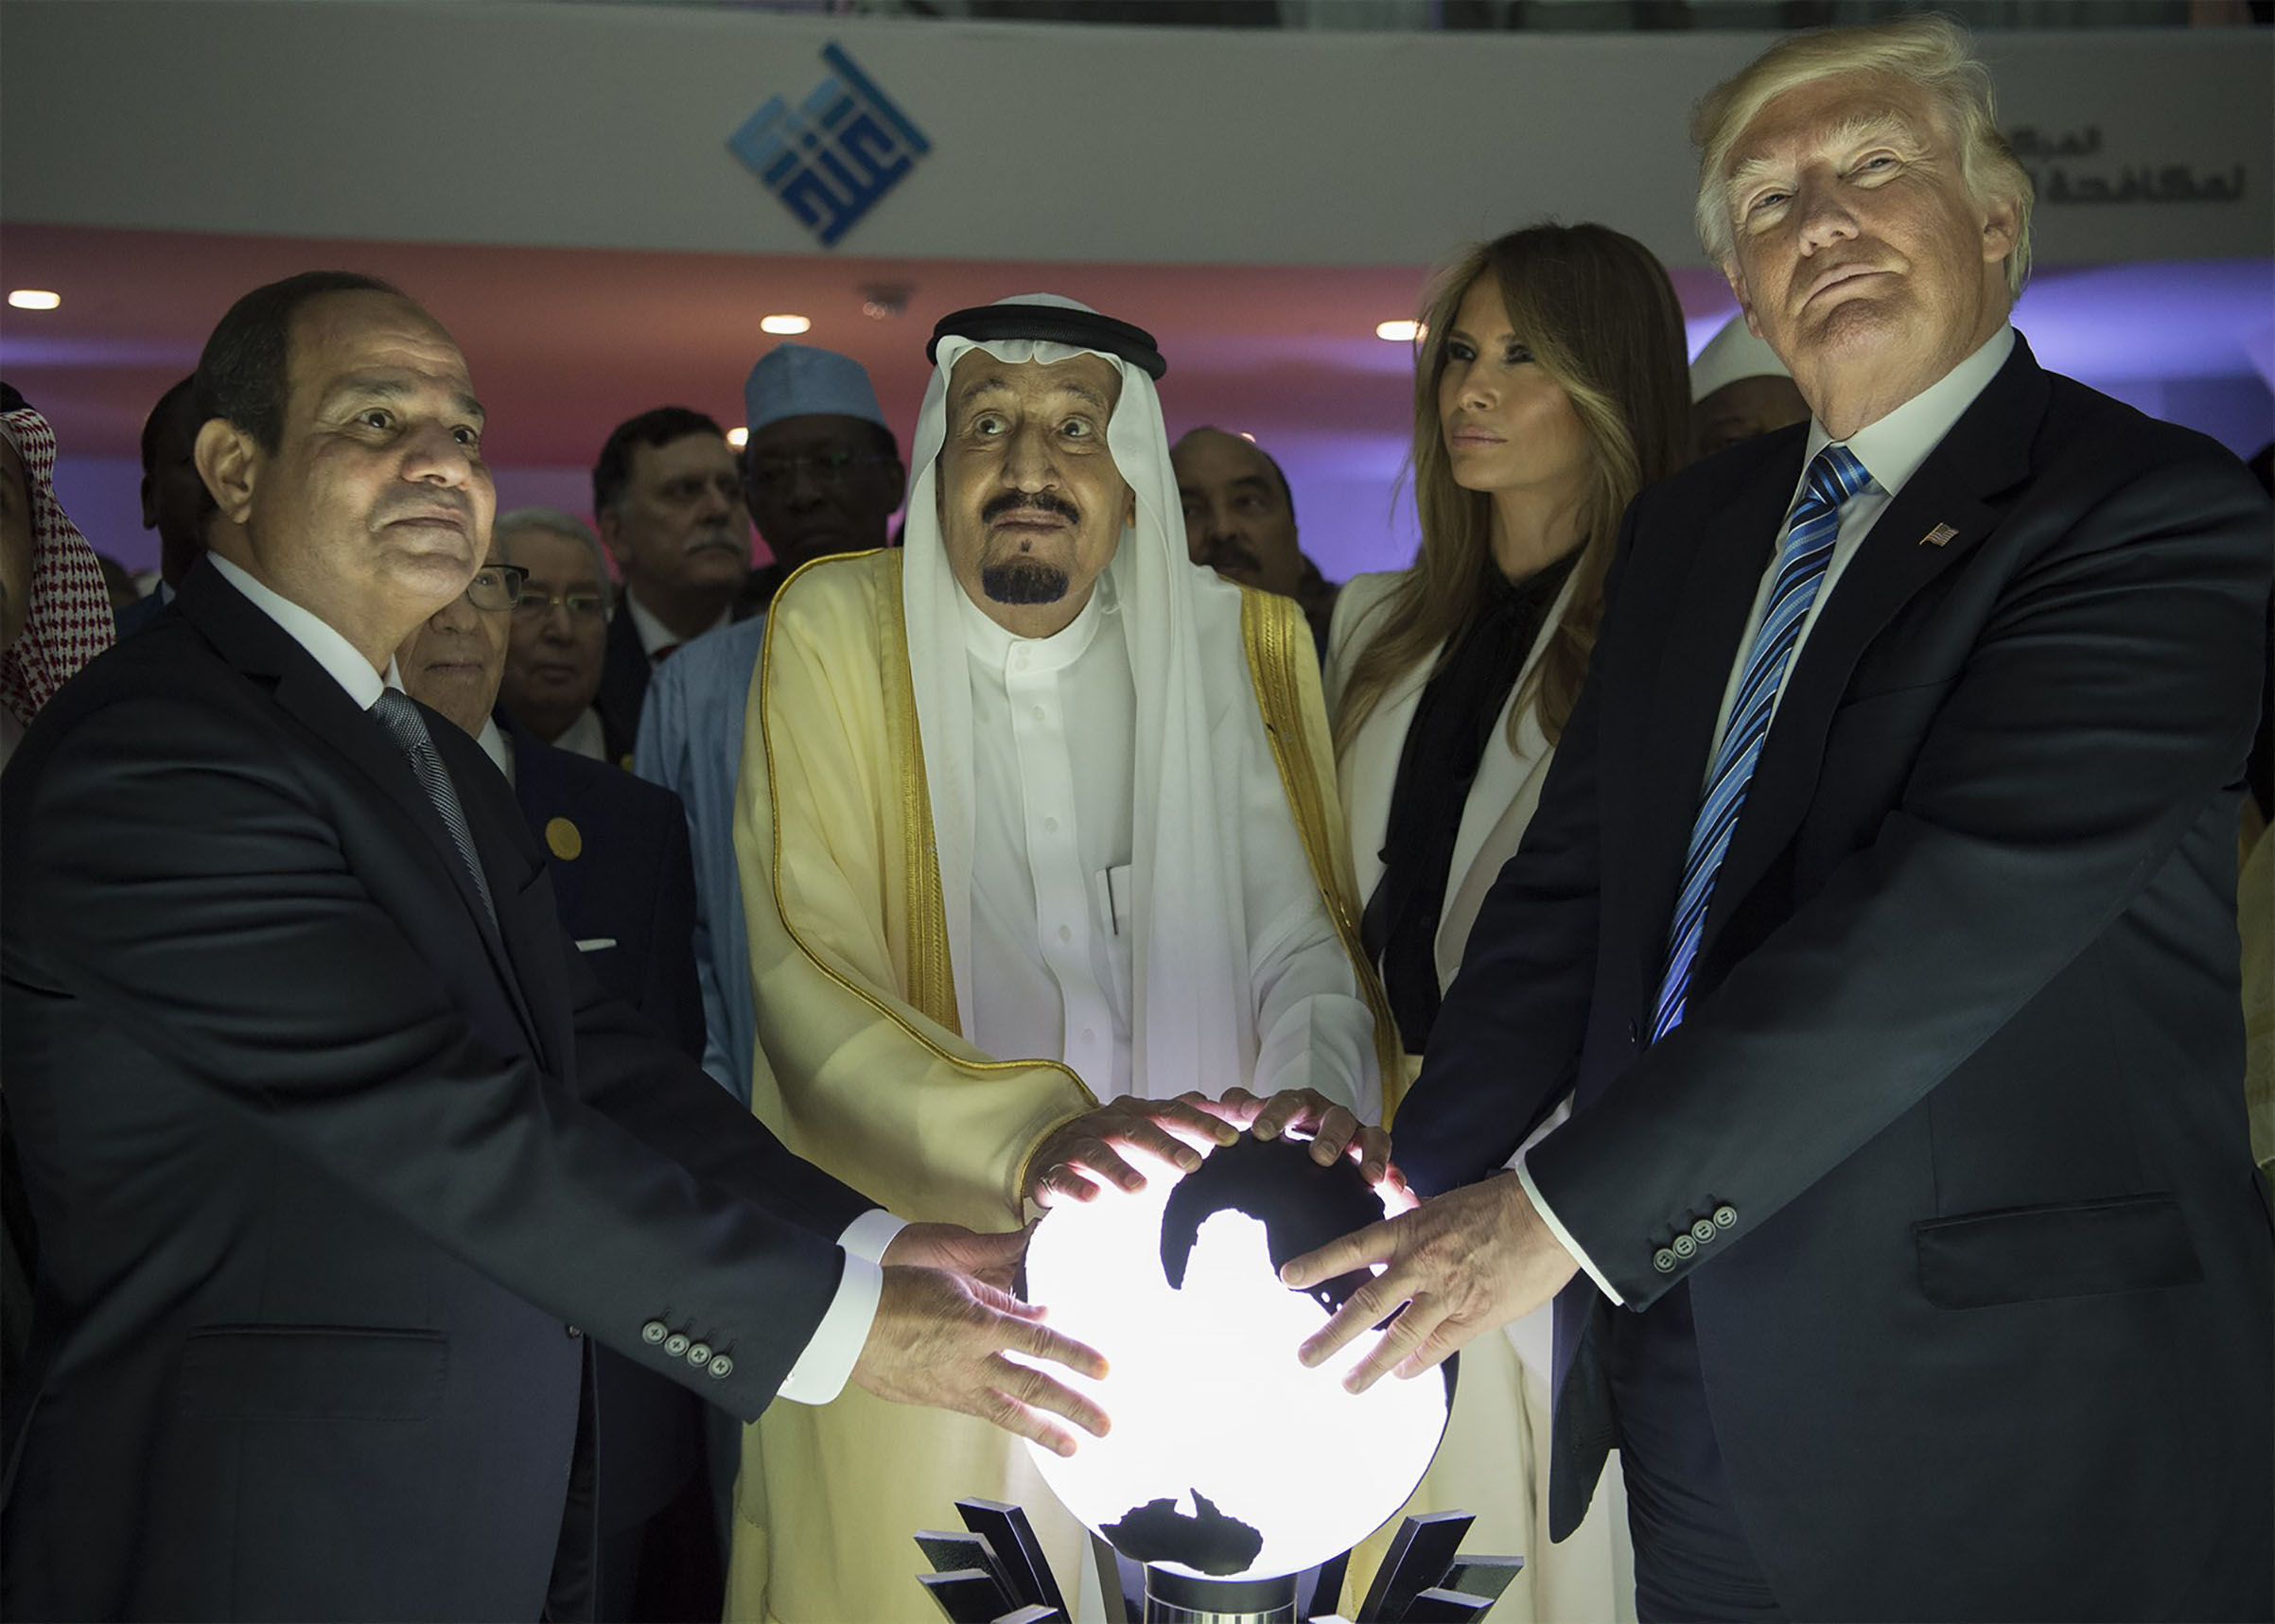 President Donald Trump, Melania Trump, Saudi Arabia's King Salman bin Abdulaziz al-Saud and Egyptian President Abdel Fattah el-Sisi put their hands on an illuminated globe during the inauguration ceremony of the Global Center for Combating Extremist Ideology on May 21, 2017.